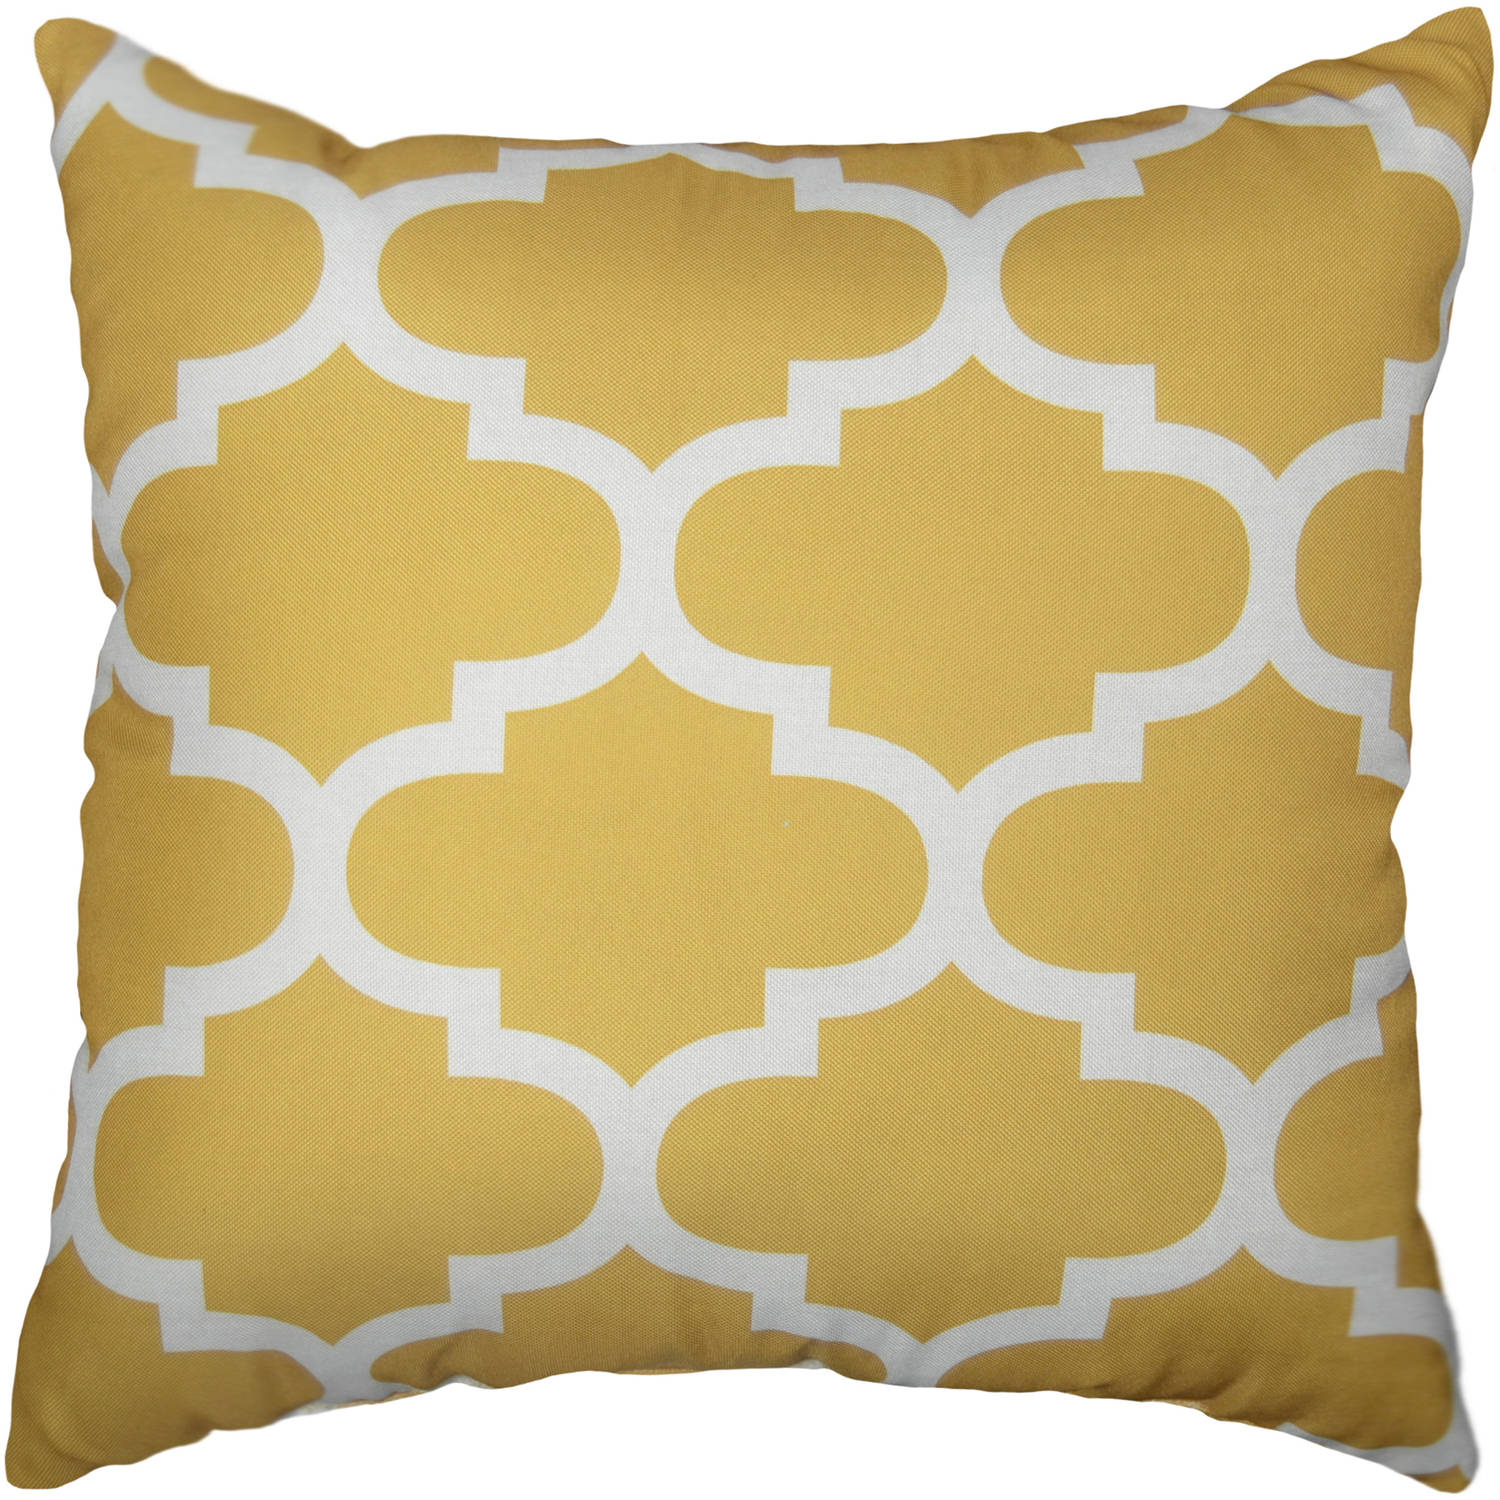 Aqua Blue Throw Pillows | Gold Throw Pillows | Coral Throw Pillows